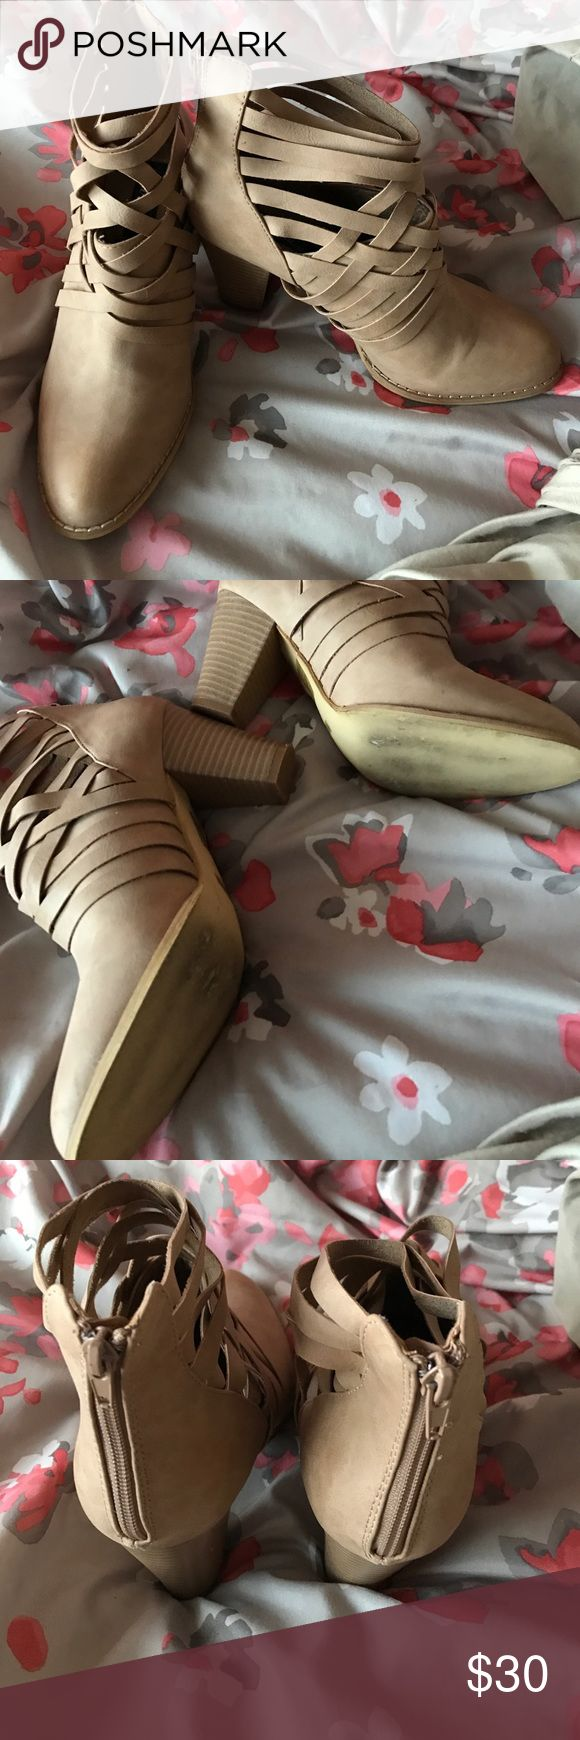 Tan Fashion Booties Gently worn! Minimal scuffing on the bottom, otherwise in excellent condition! Red Dress Boutique Shoes Ankle Boots & Booties